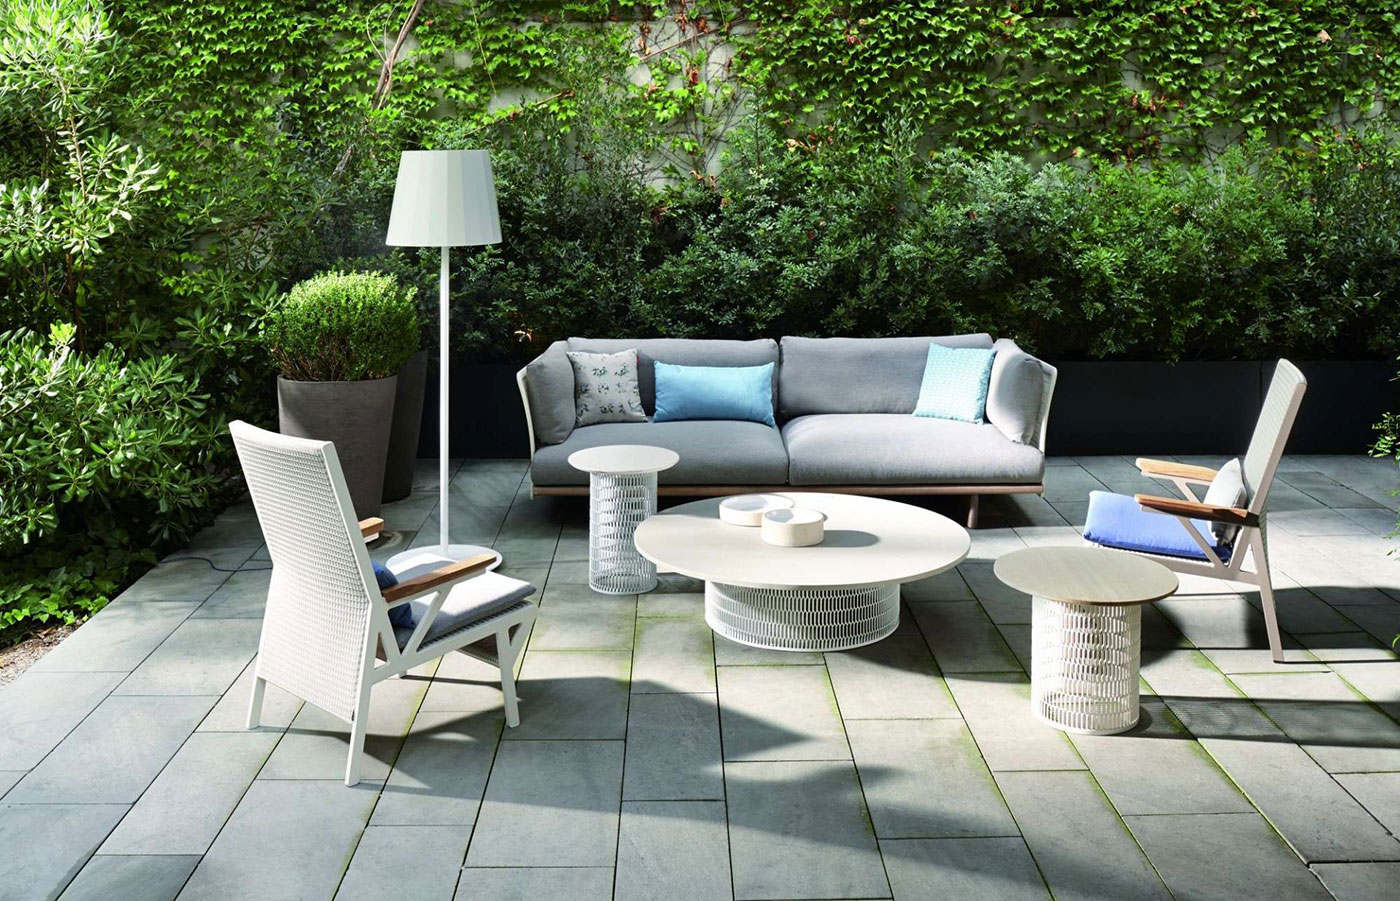 Obegi Home Outdoor Furniture Kettal Outdoor Collection 2